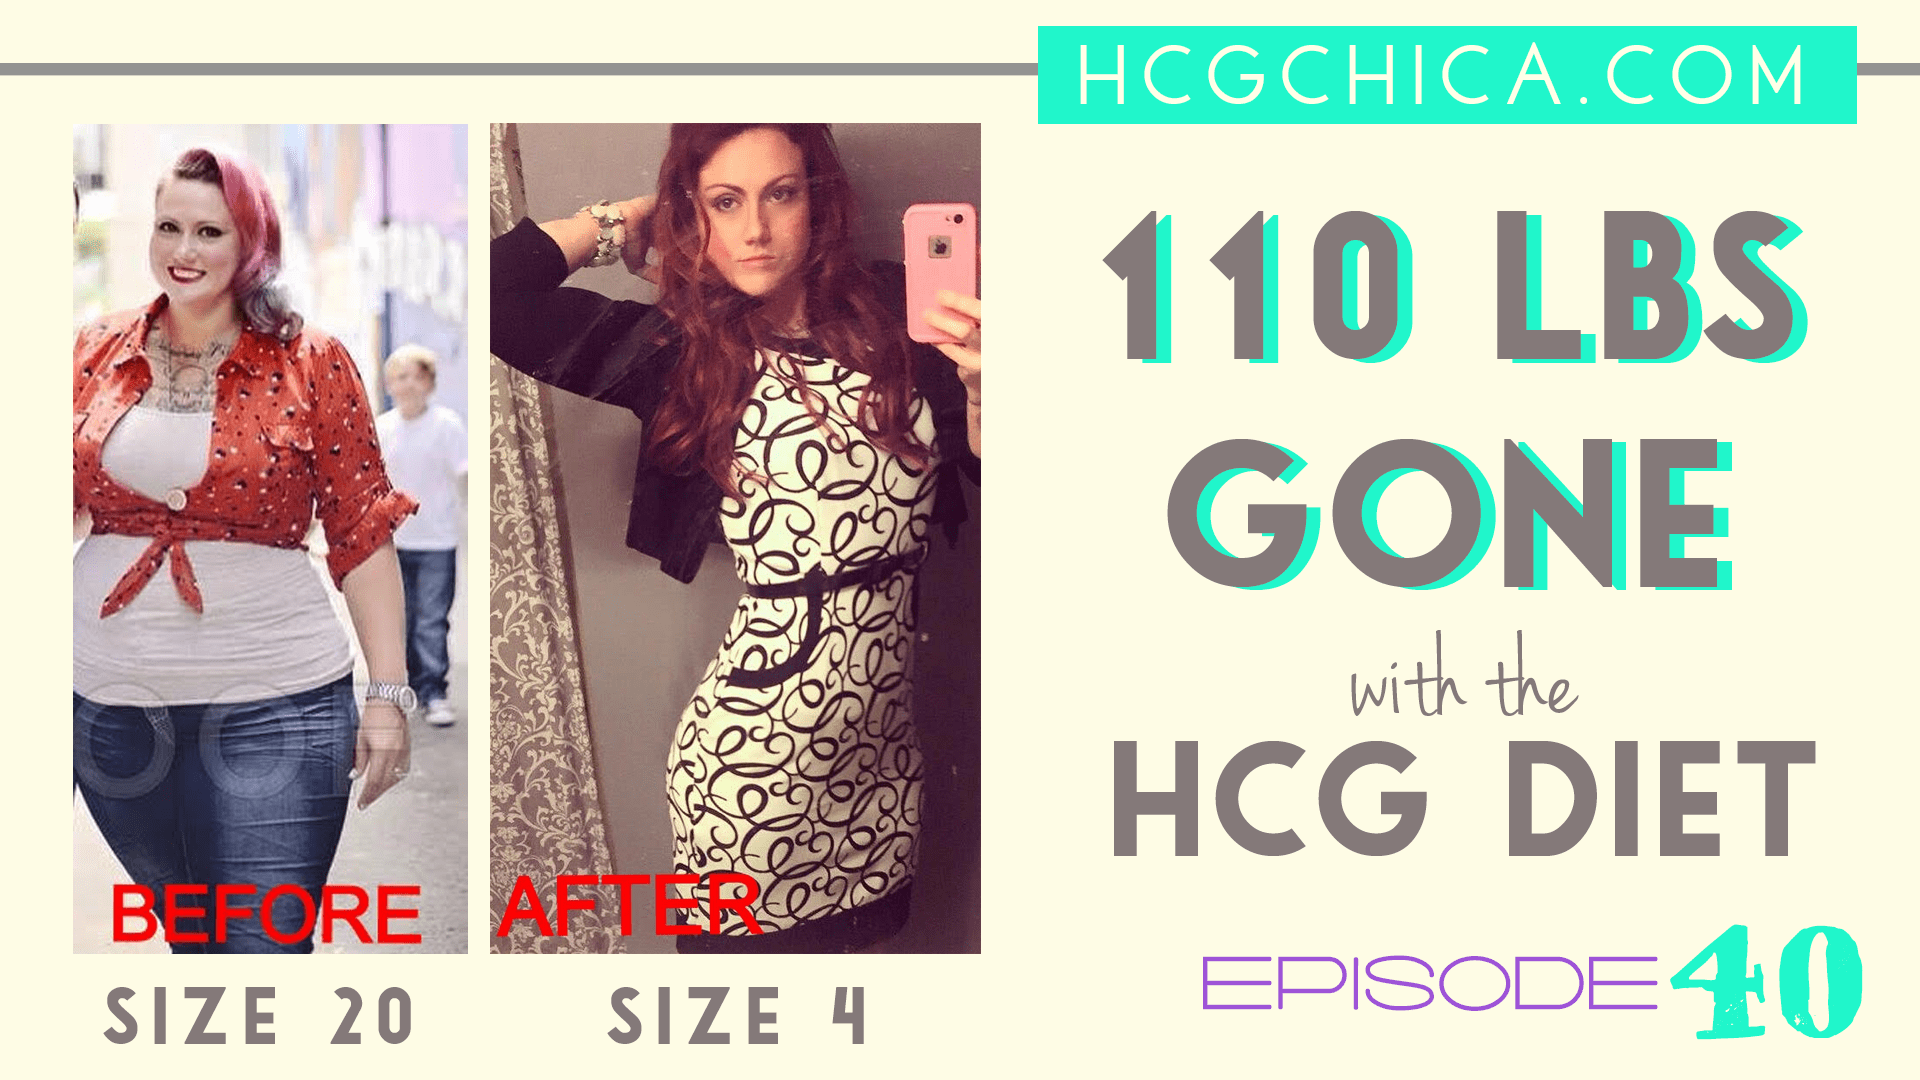 befpre-and-after-hcg-injections-episode-40-melissa